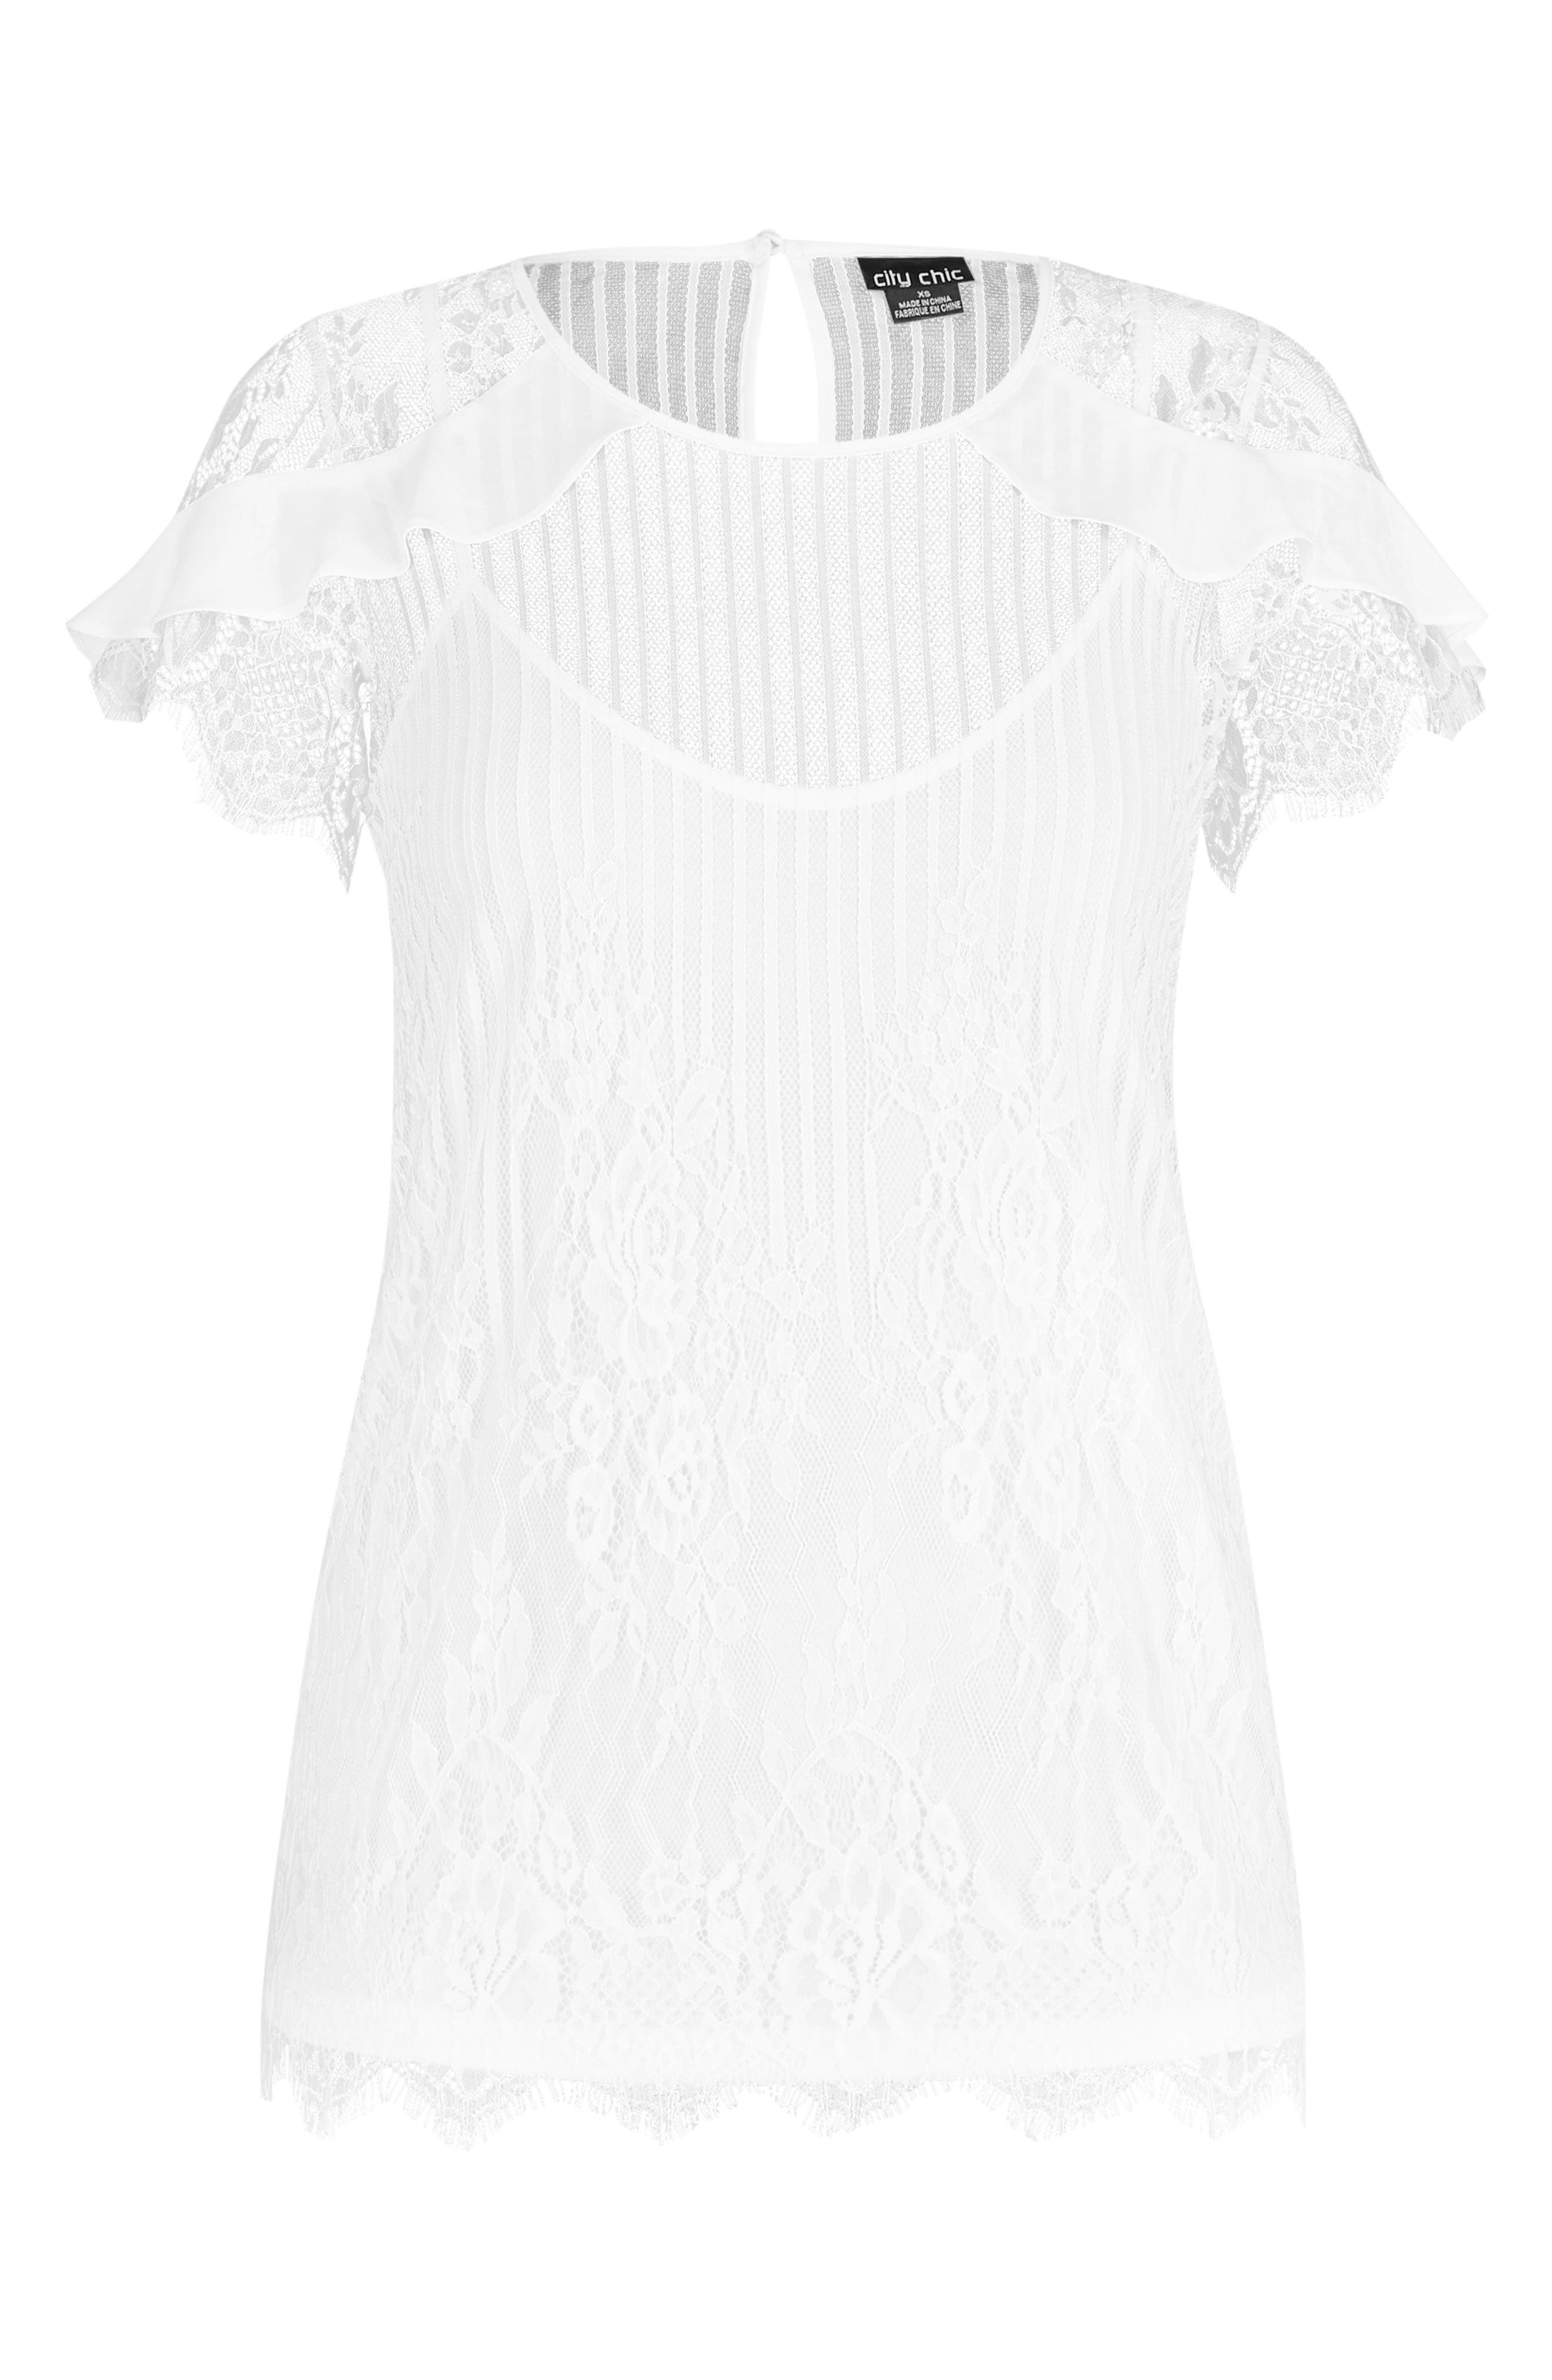 CITY CHIC,                             Ruffle Stripe Lace Top,                             Alternate thumbnail 3, color,                             IVORY